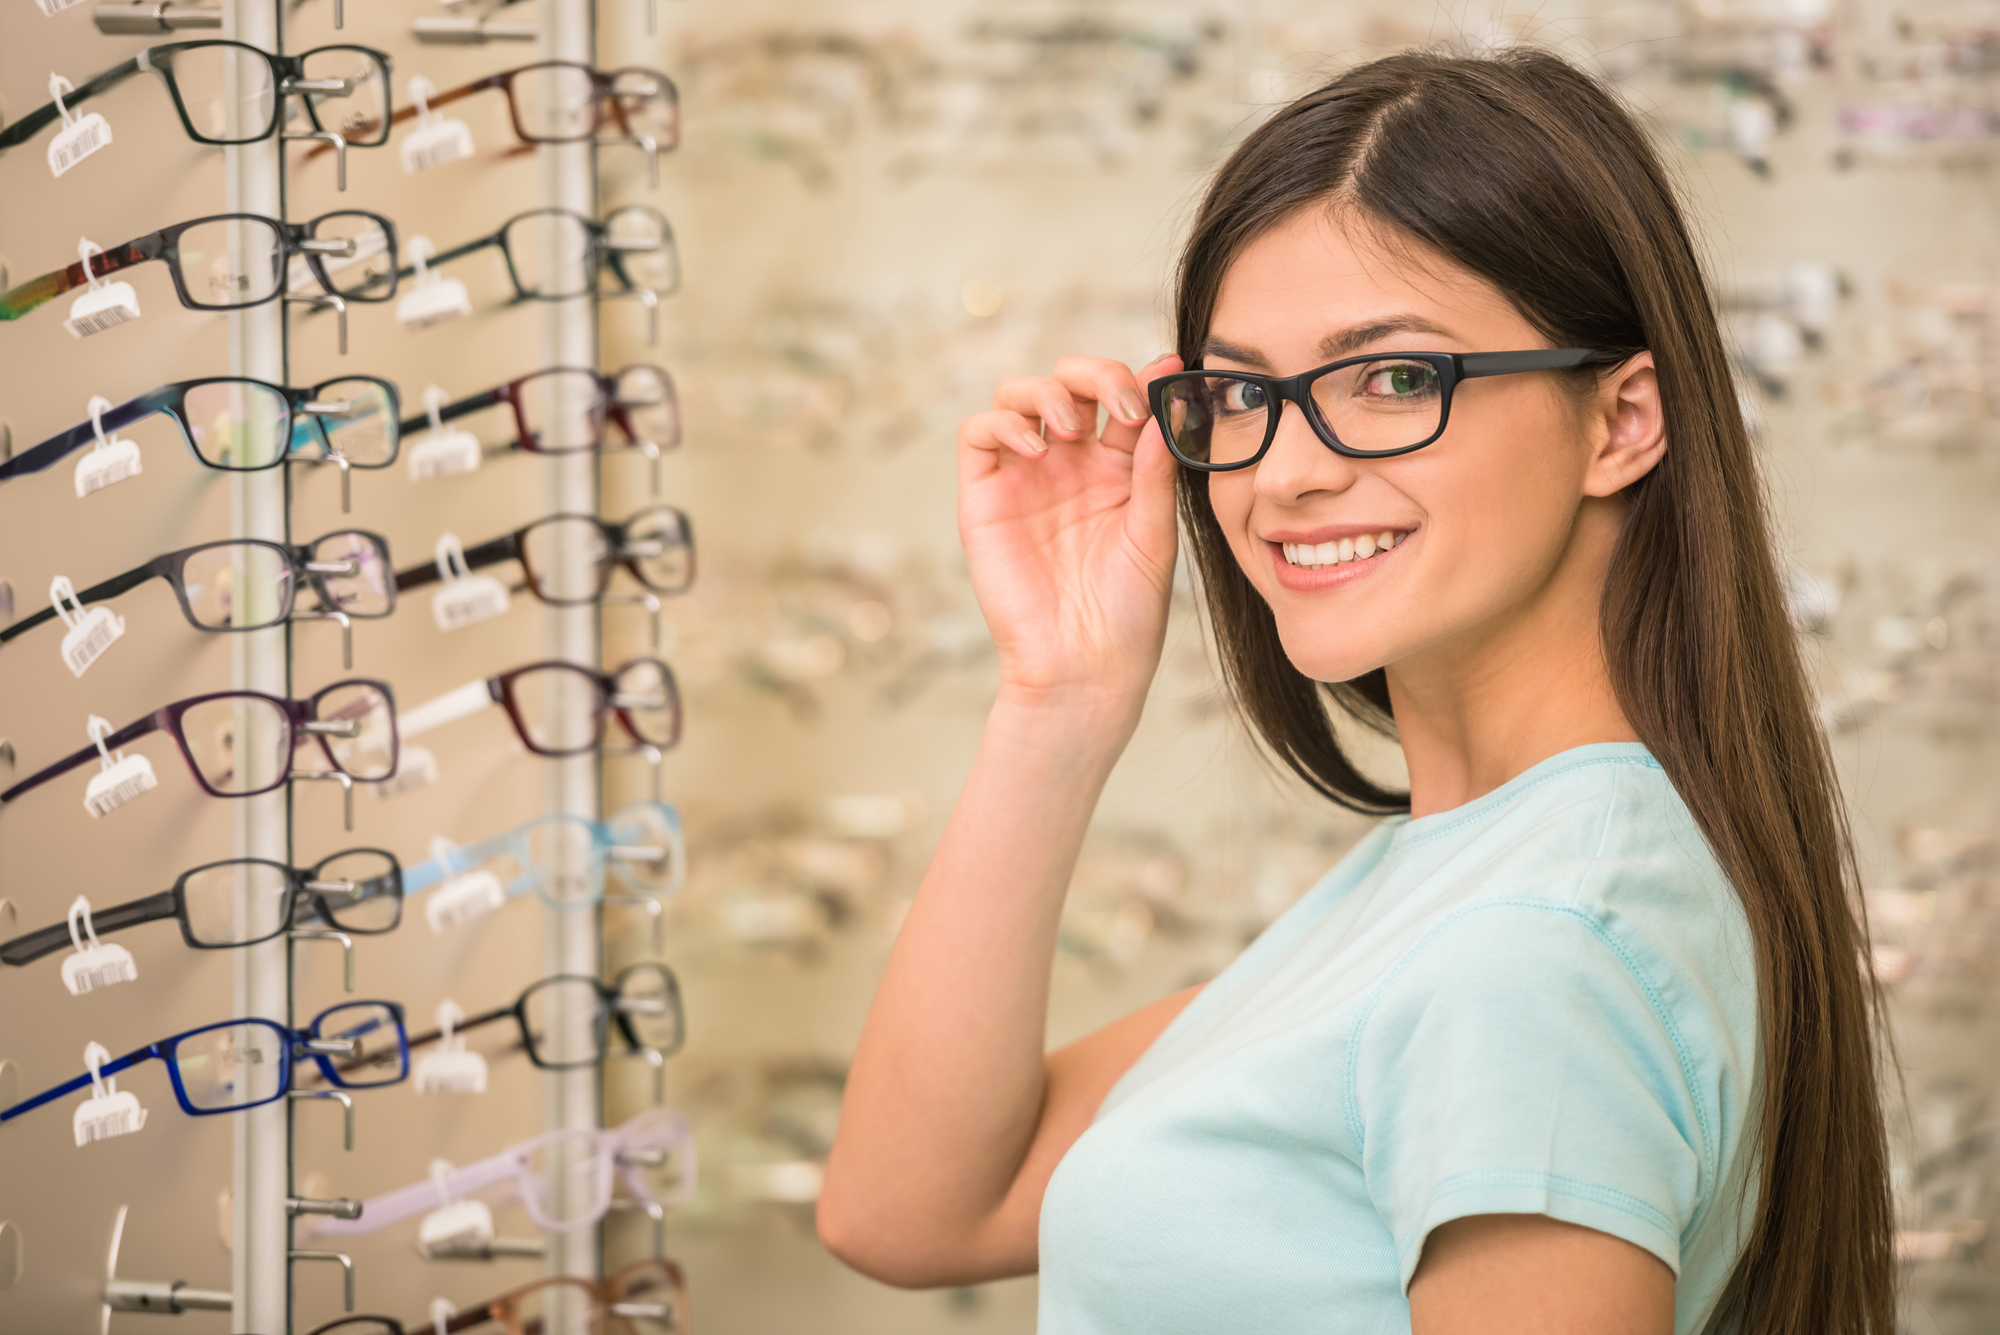 b7c1a0ae19dfd 3 Tips for Choosing the Right Eyeglasses for Your Face Shape - First ...